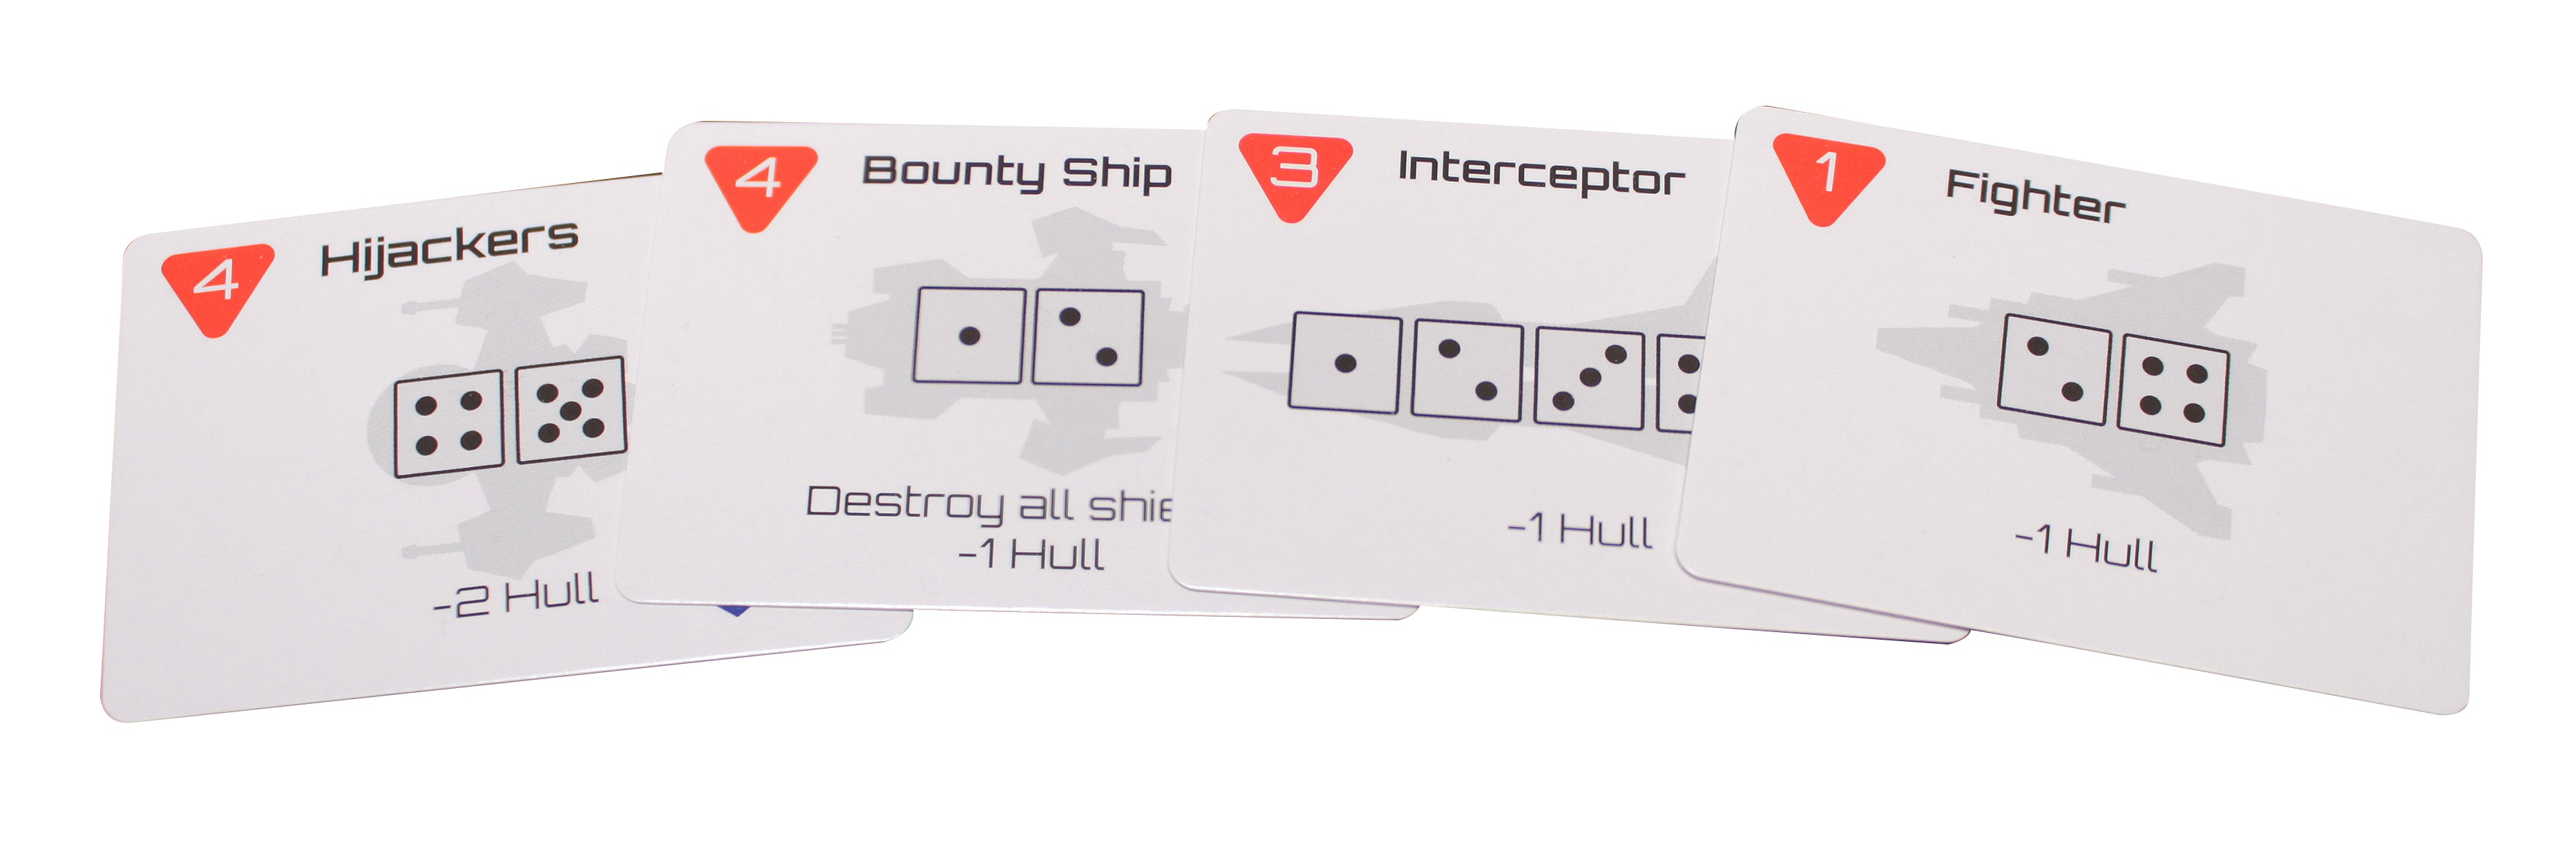 Four threat cards with dice icons and card effects